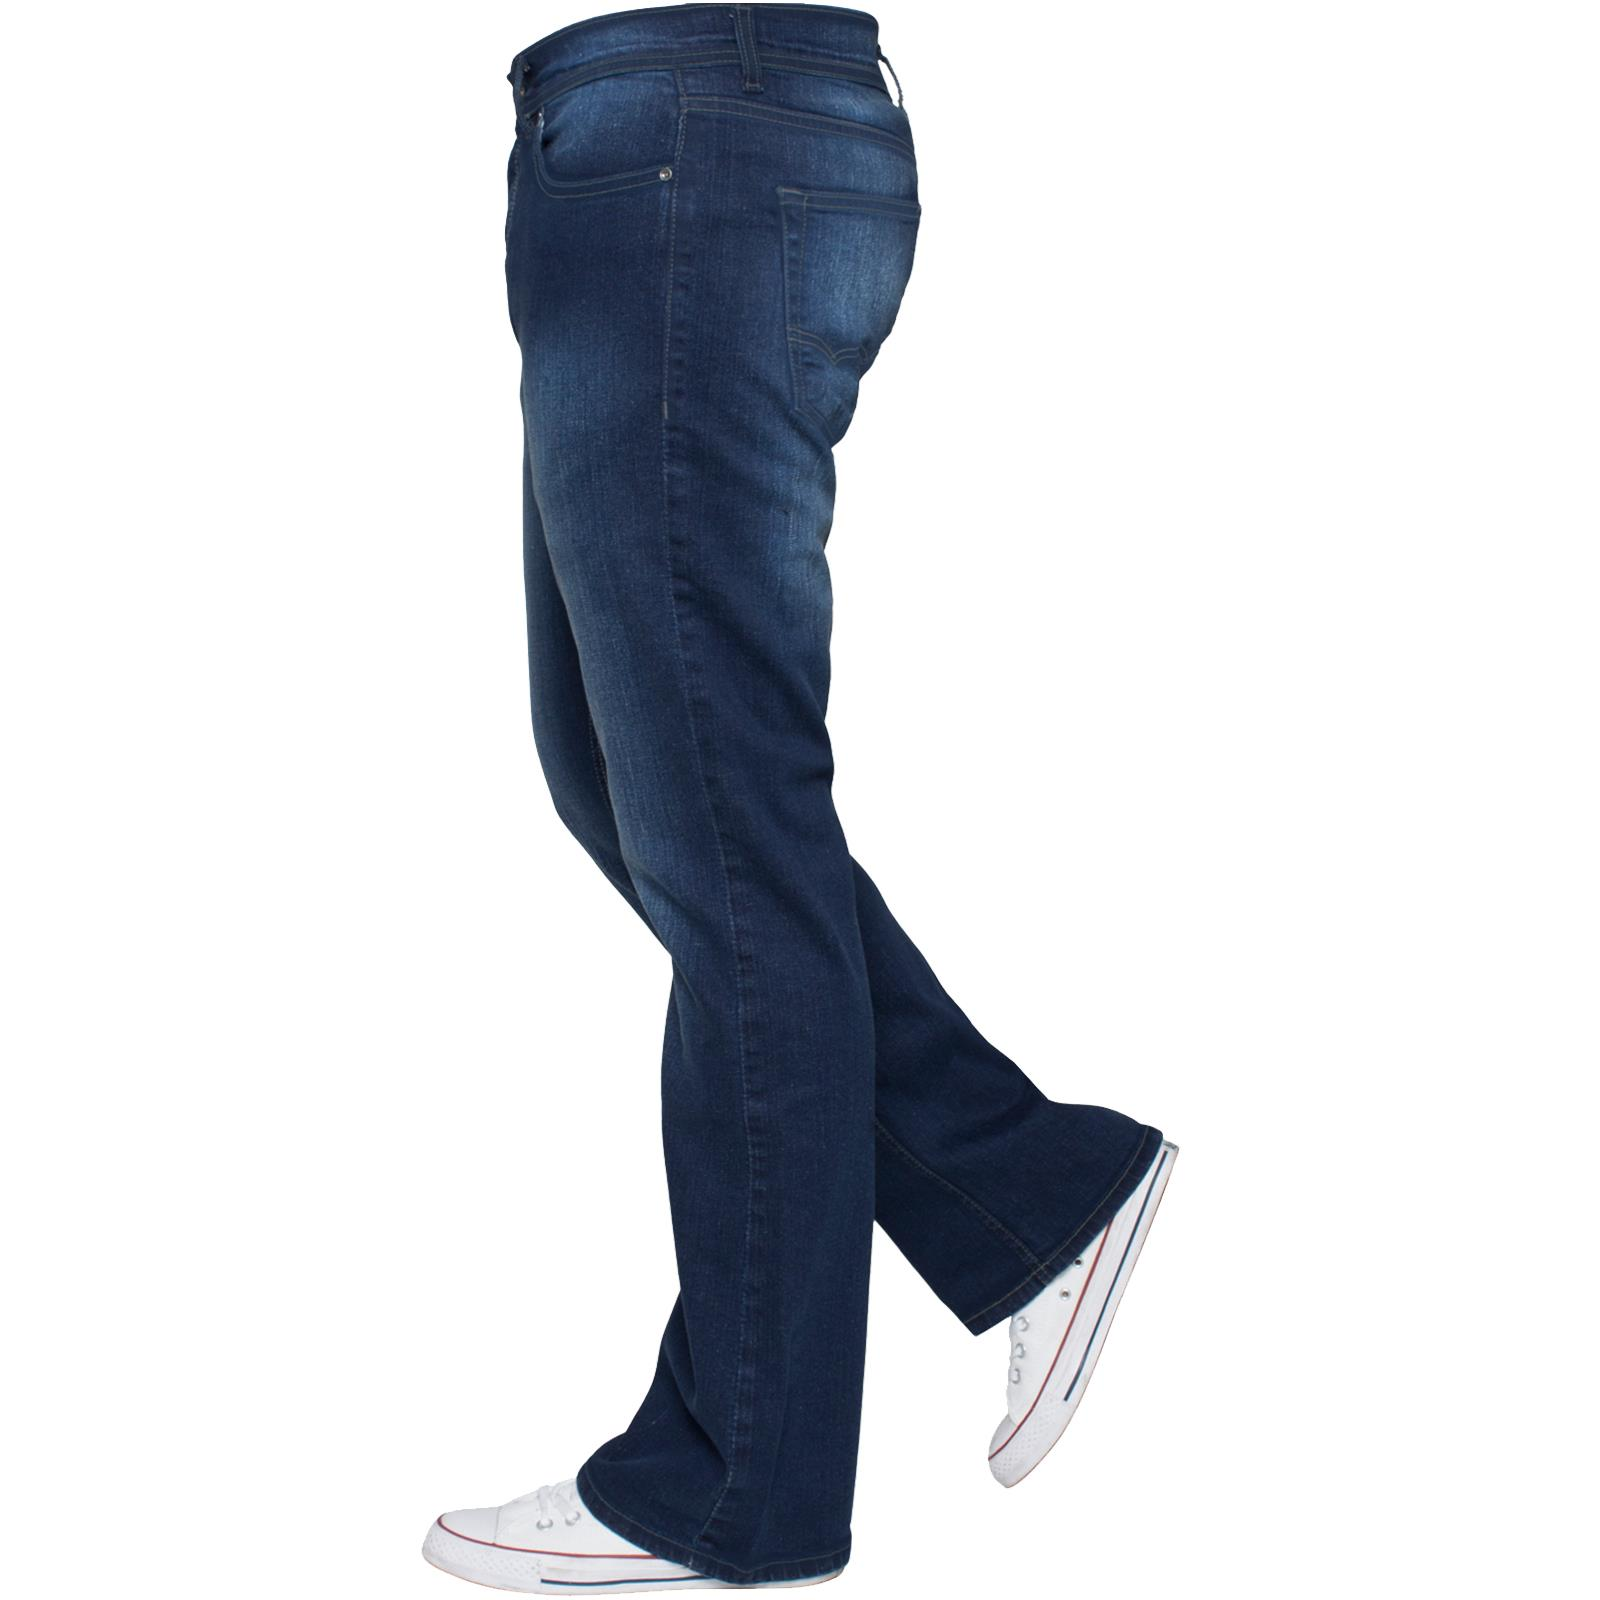 Enzo-Mens-Jeans-Big-Tall-Leg-King-Size-Denim-Pants-Chino-Trousers-Waist-44-034-60-034 miniature 62